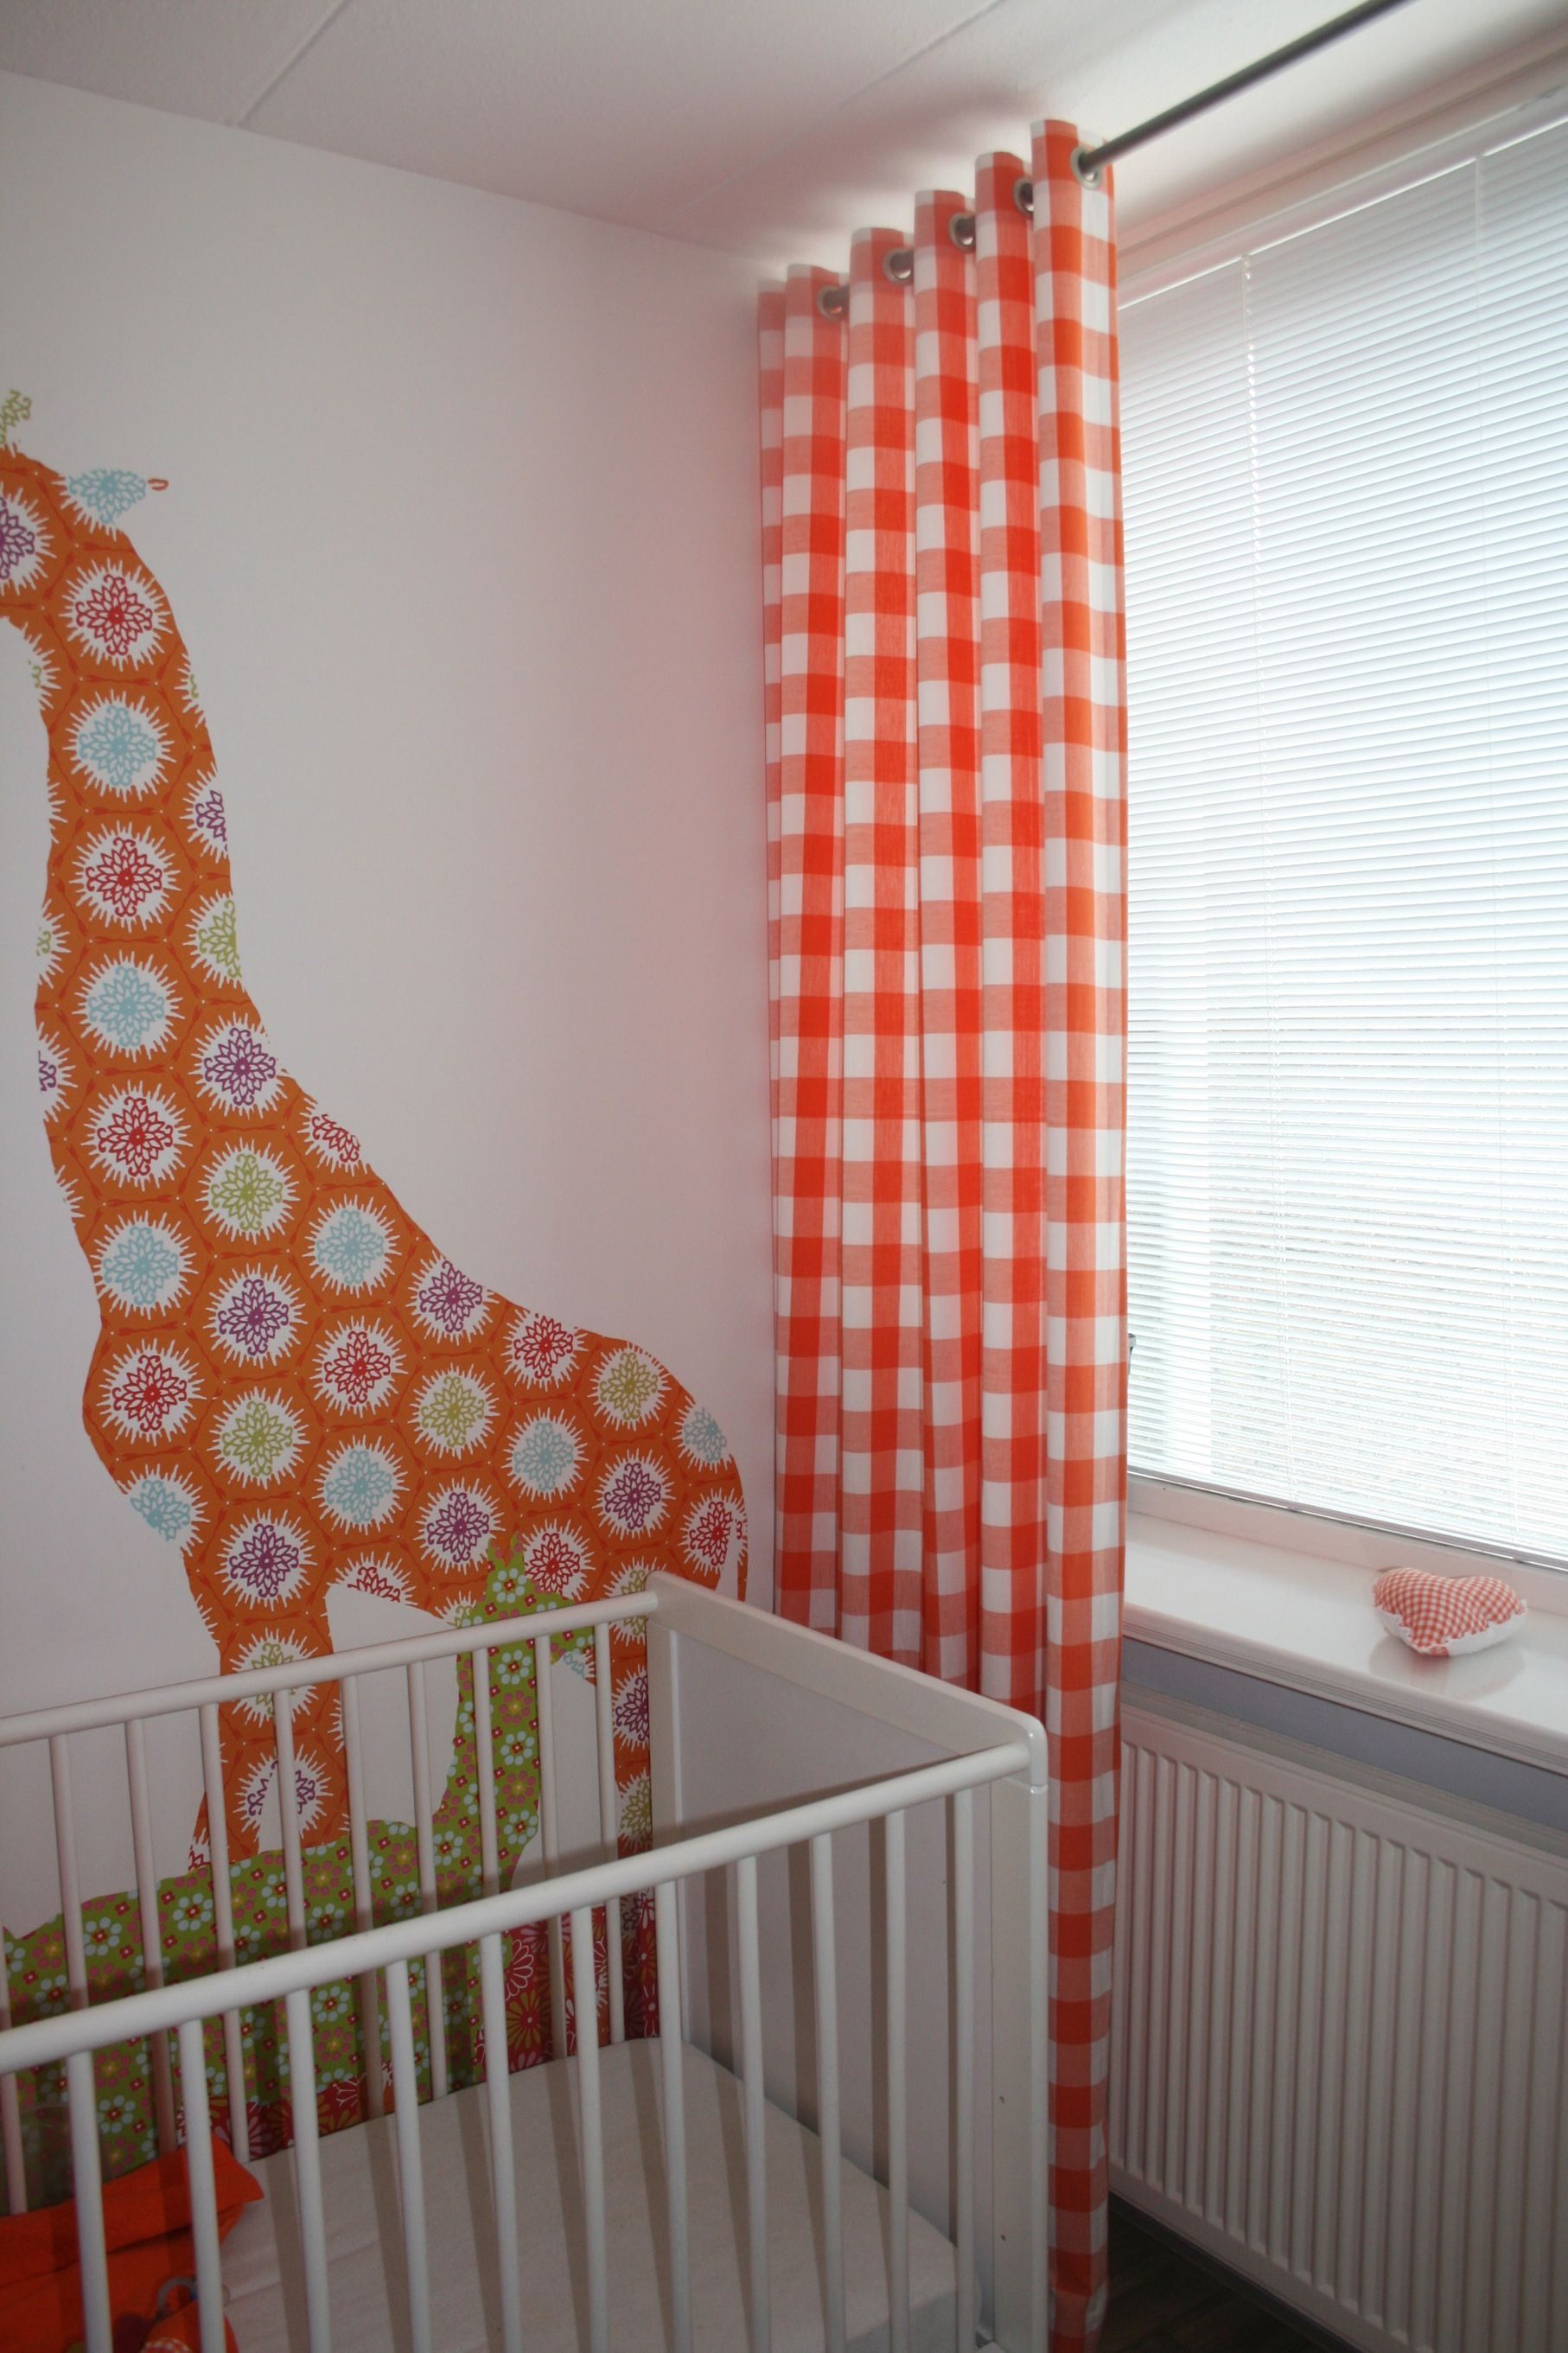 kinderkamer gordijnen curtains via boer bontig